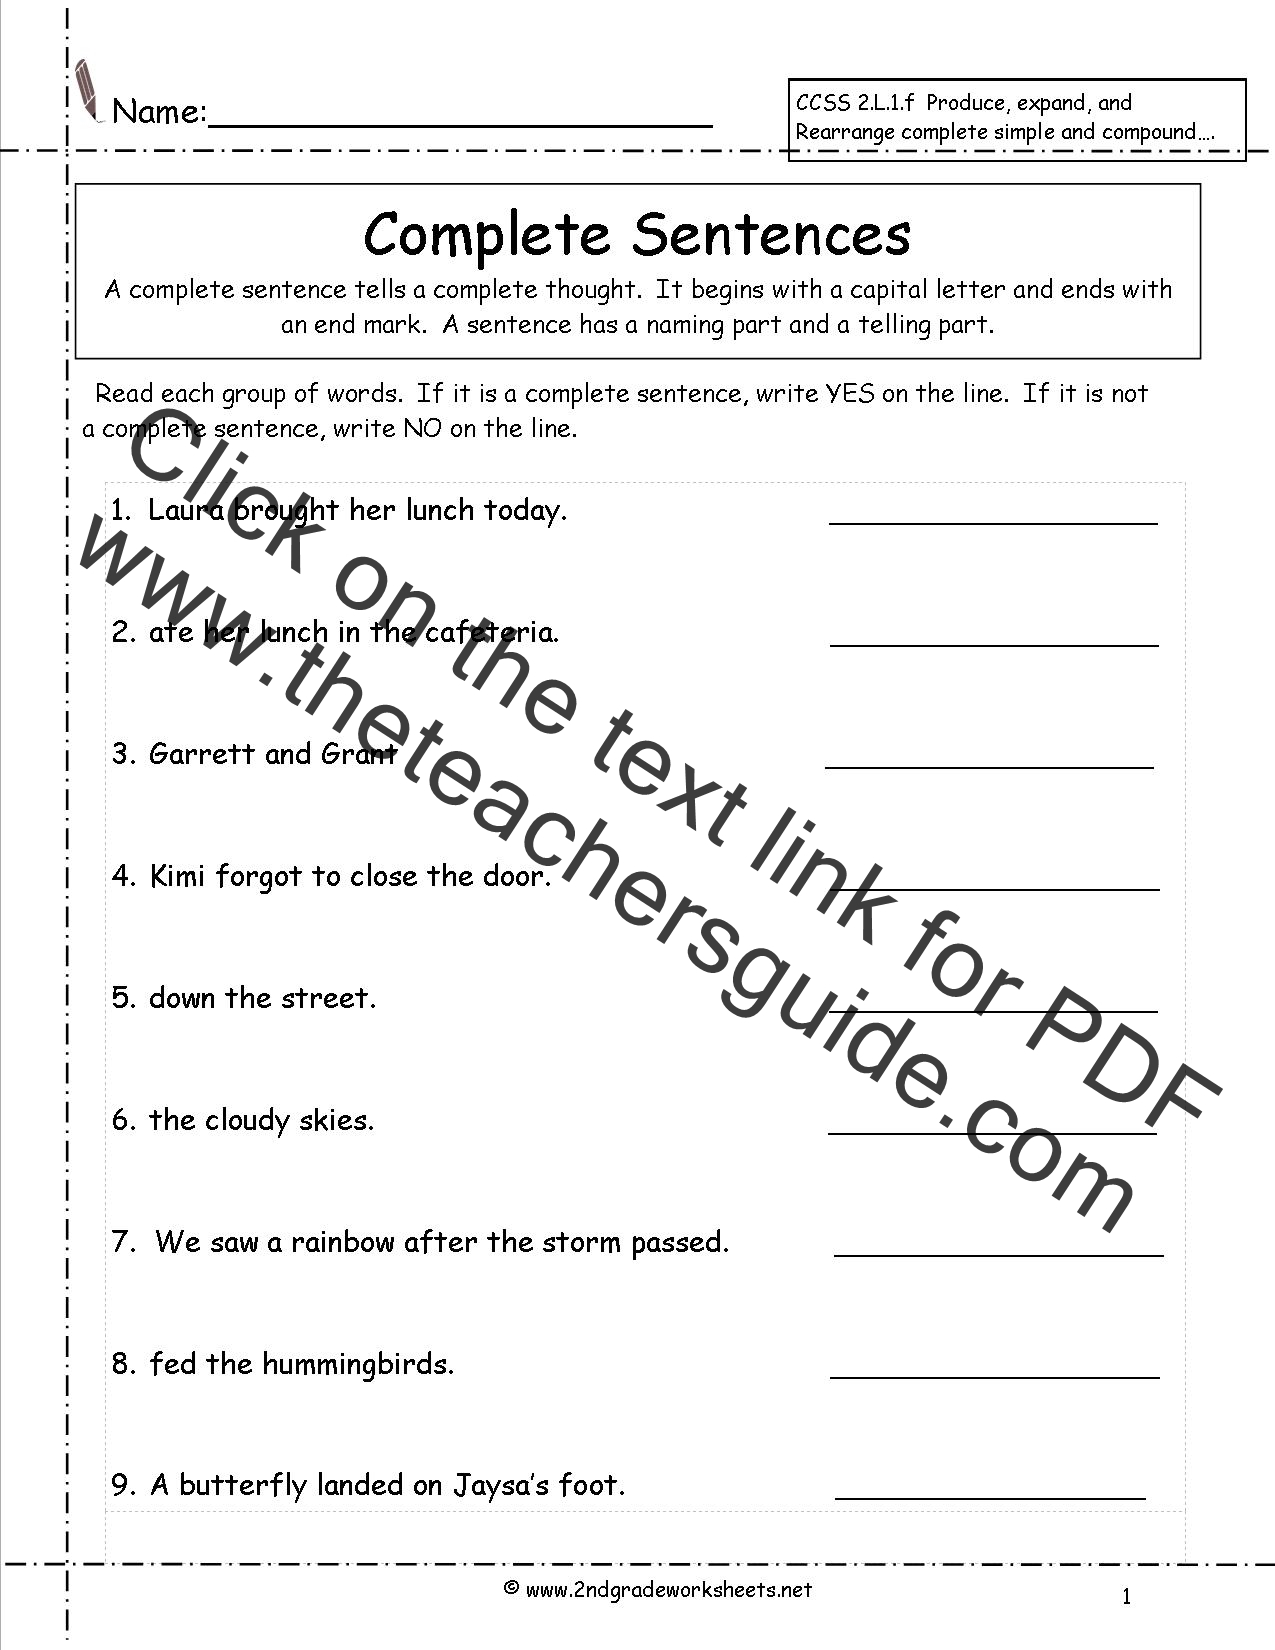 Uncategorized Sentence Editing Worksheets second grade sentences worksheets ccss 2 l 1 f sentence worksheet complete sentences